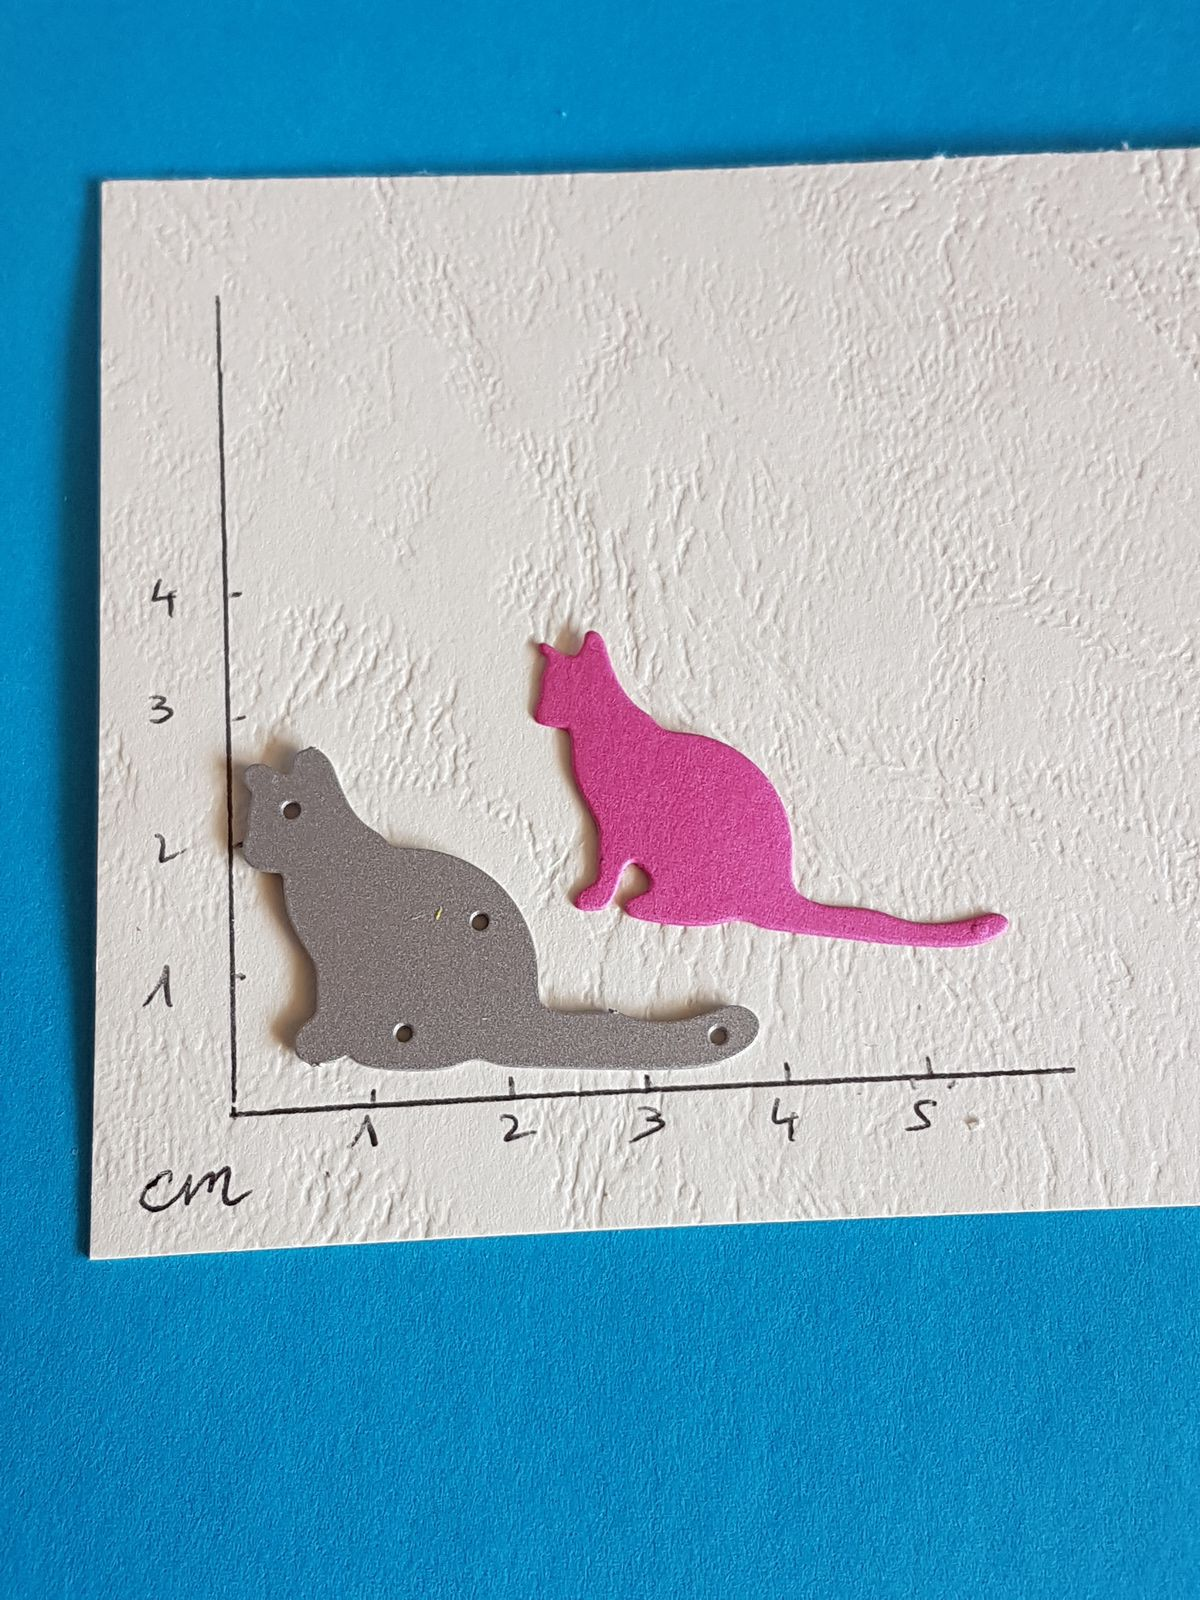 LOT 2 - CHAT 1 euro